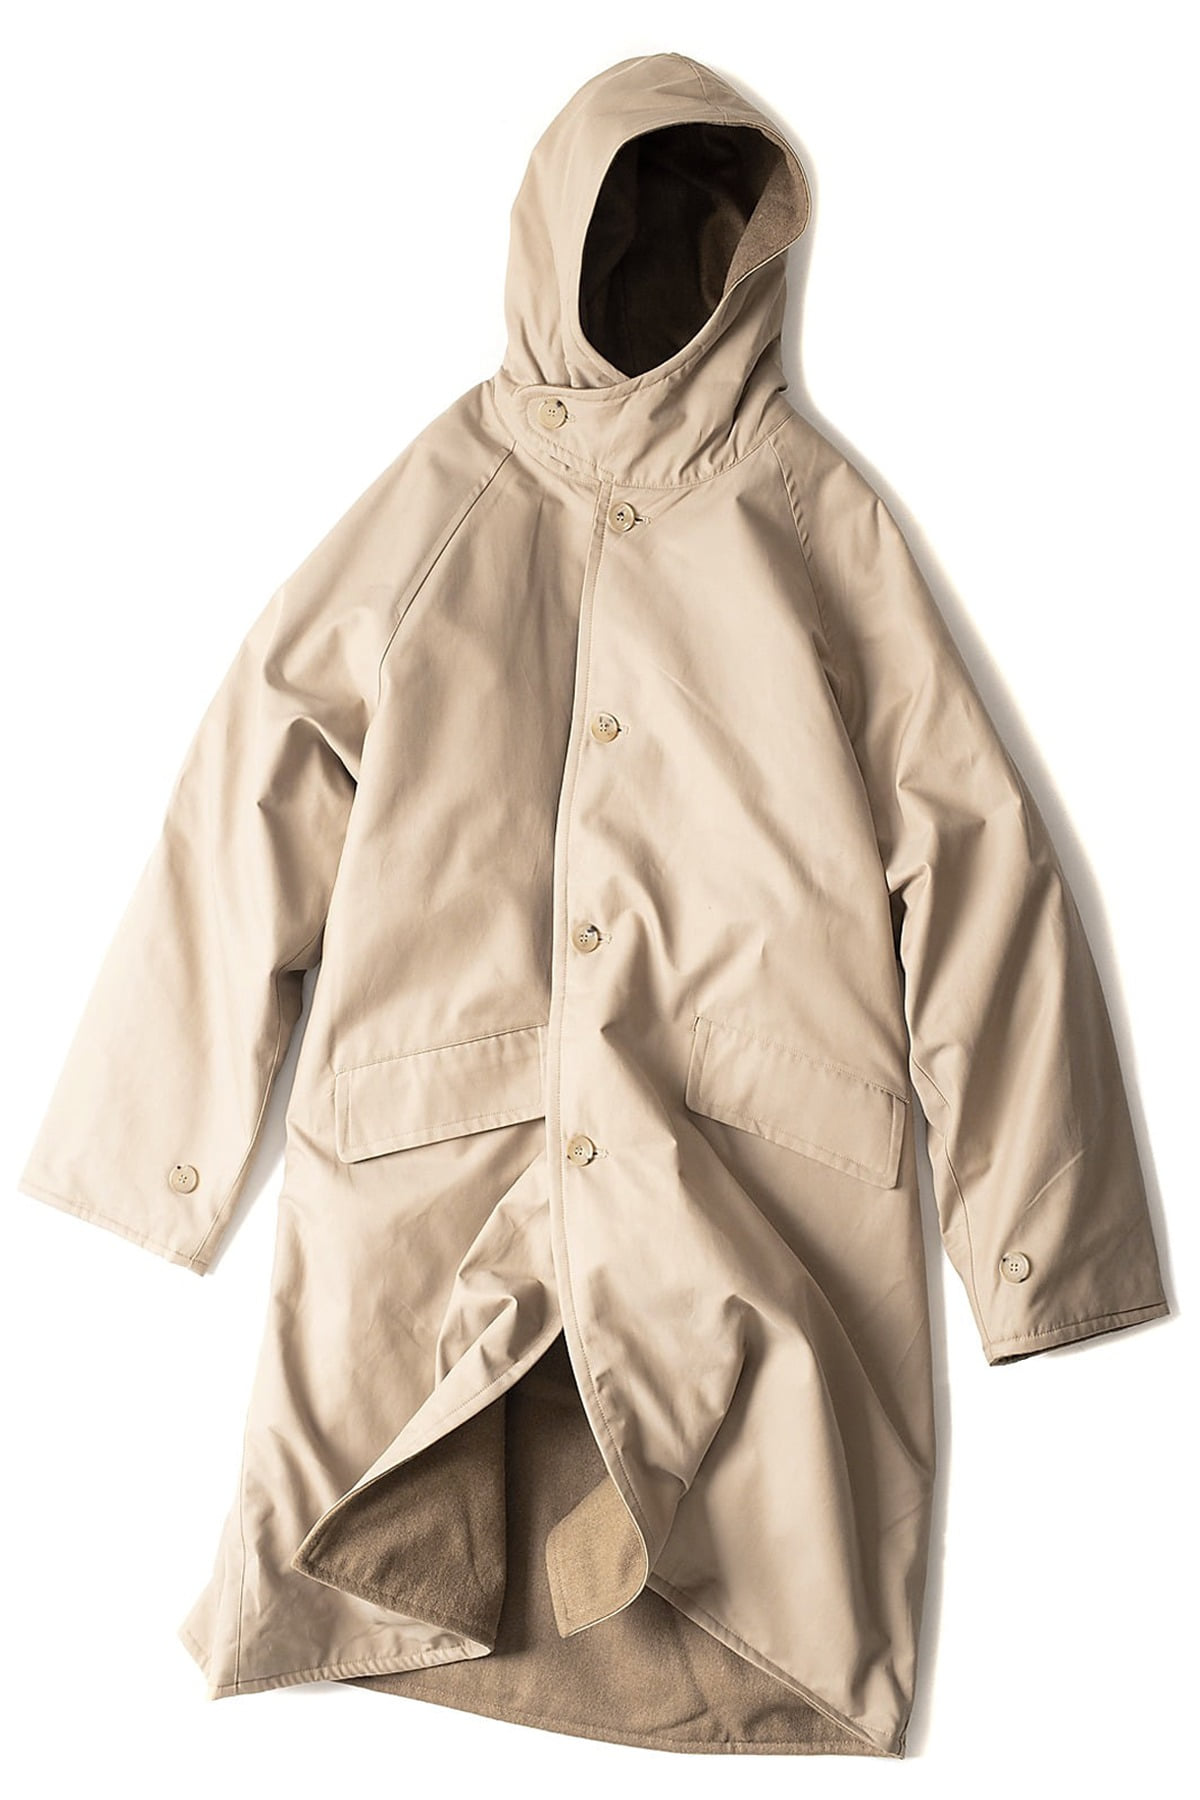 JOURNEY MAN : Journey Hood Coat (Beige)